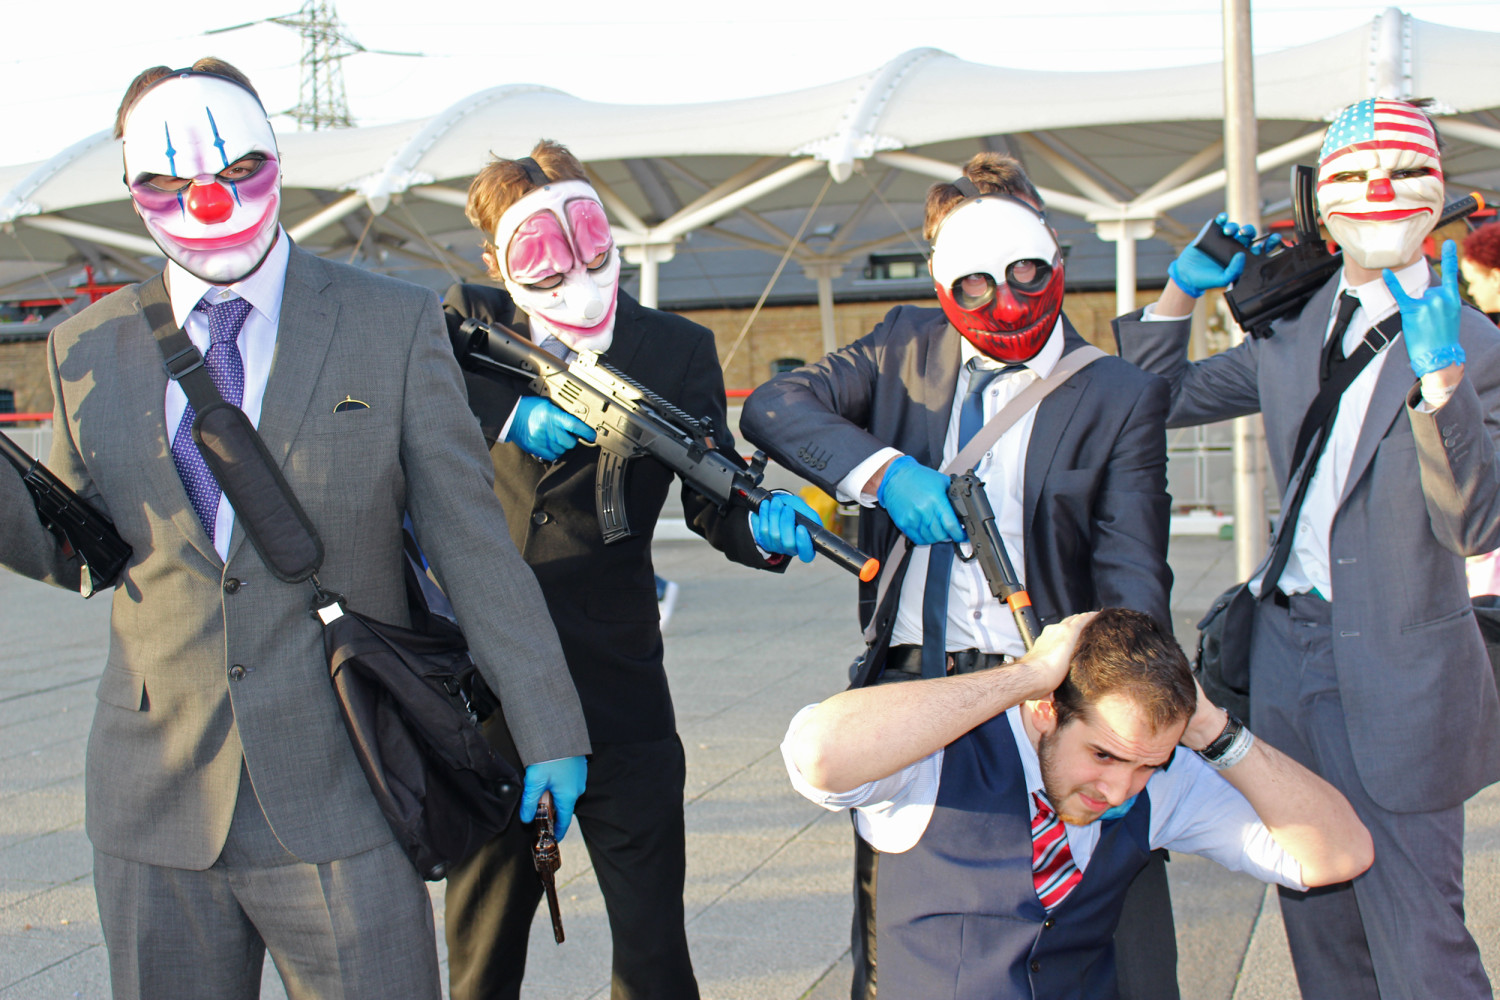 Anime Characters For Comic Con : Fake guns are confiscated at london s mcm comic con nbc news